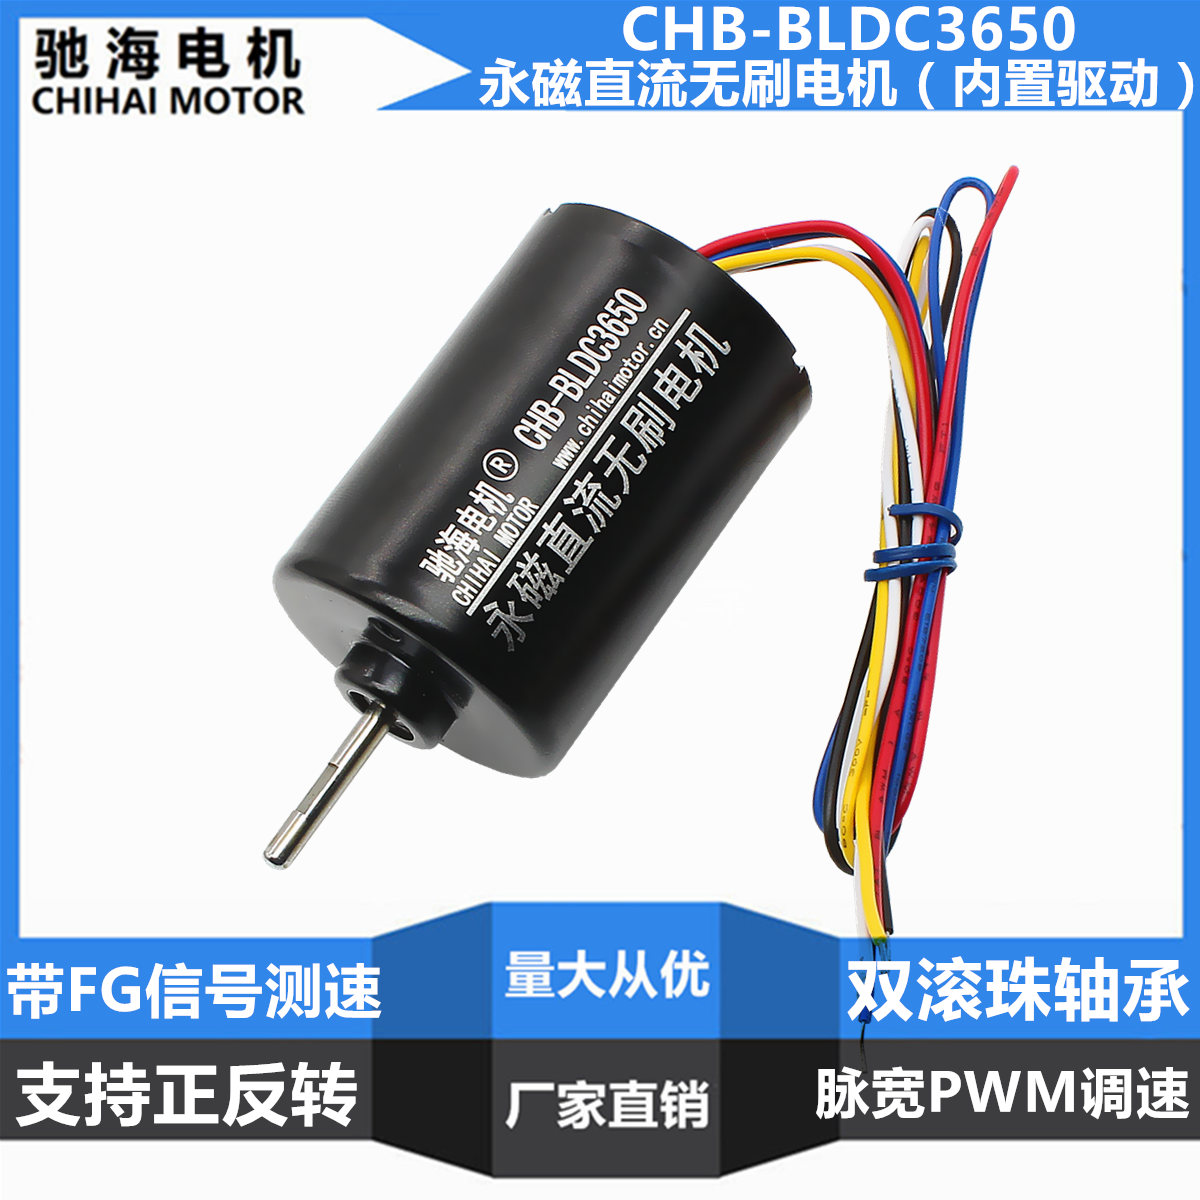 12V/24V 3000rpm/4000/6000/8000rpm BLDC3650 four-pole DC brushless motor ball bearing  with brush has built-in drive long life12V/24V 3000rpm/4000/6000/8000rpm BLDC3650 four-pole DC brushless motor ball bearing  with brush has built-in drive long life